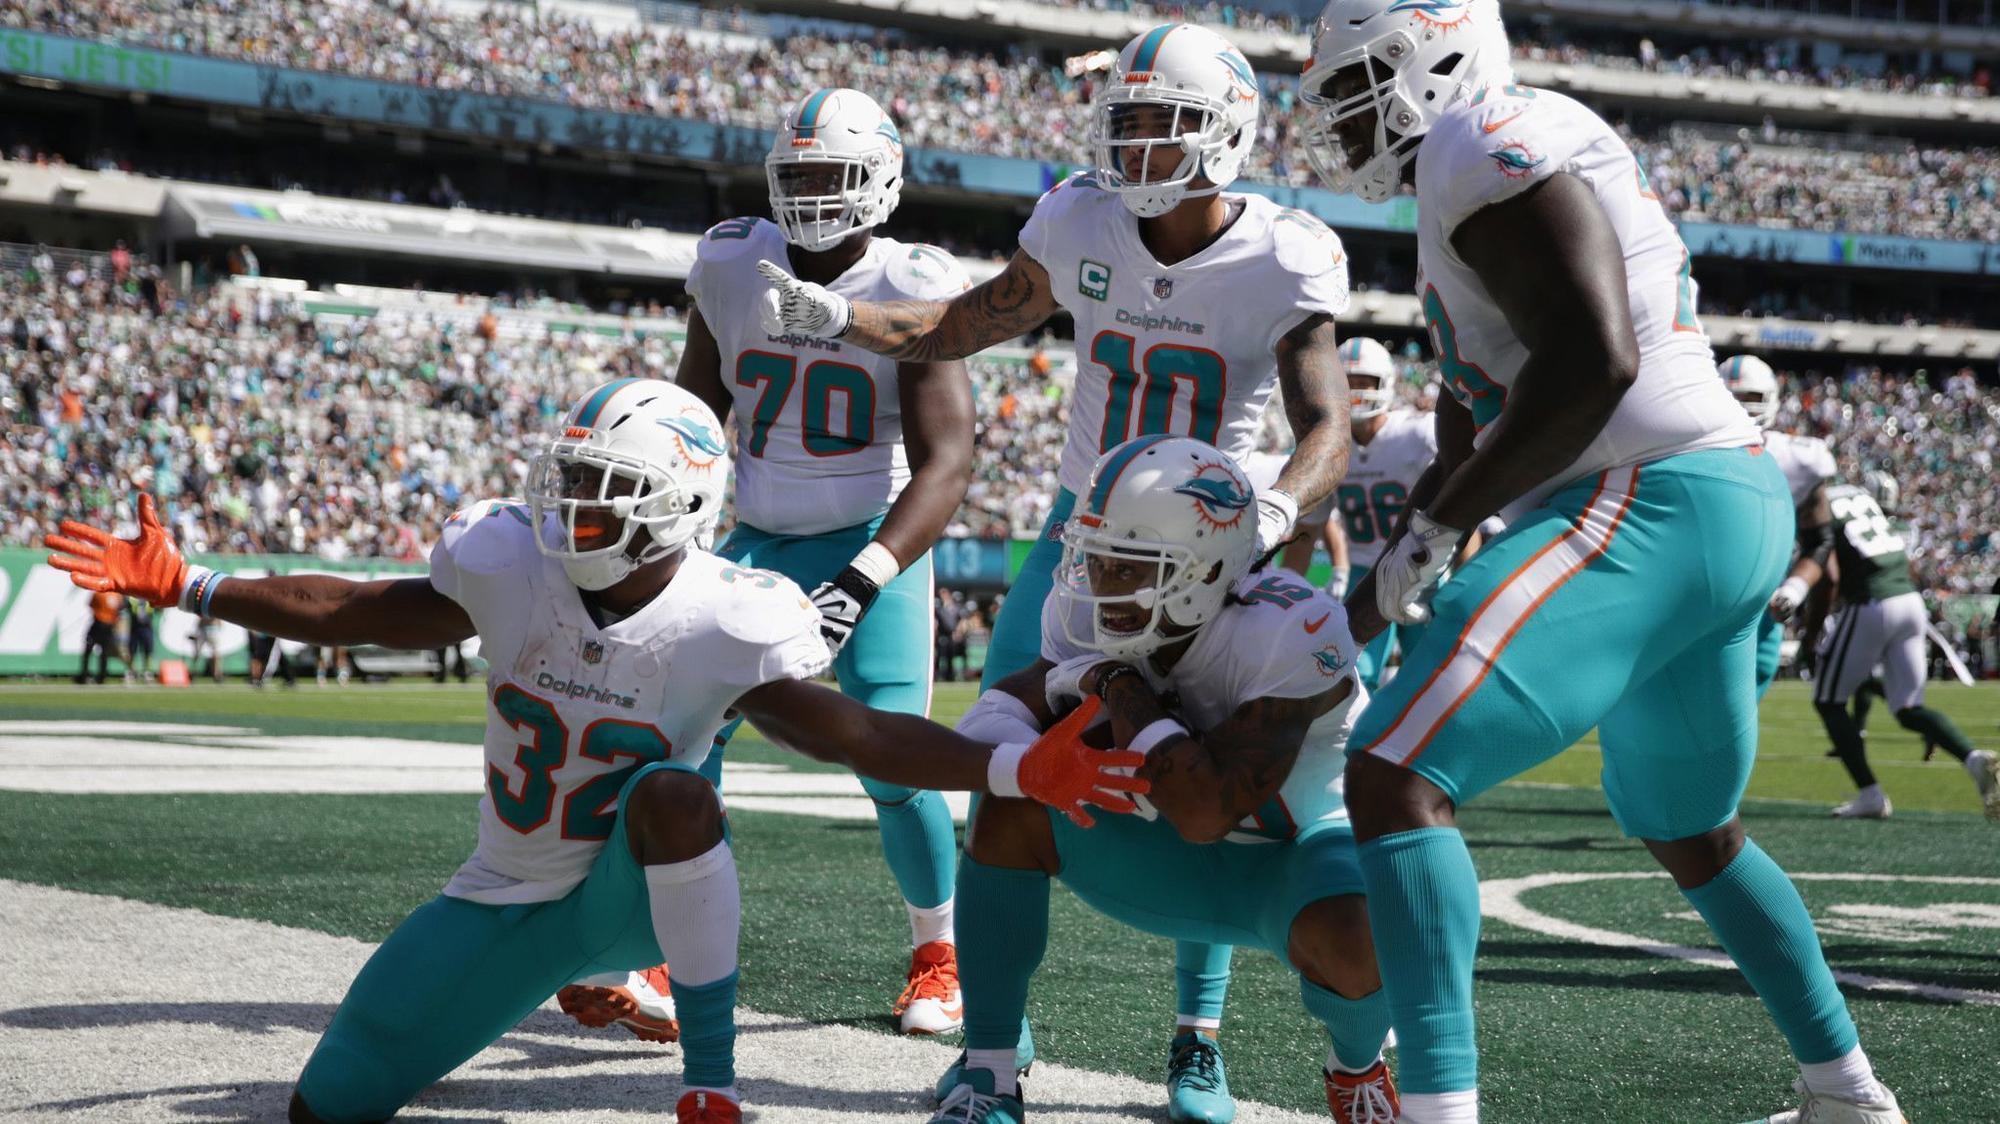 Fl-sp-dolphins-preview-box-20180922